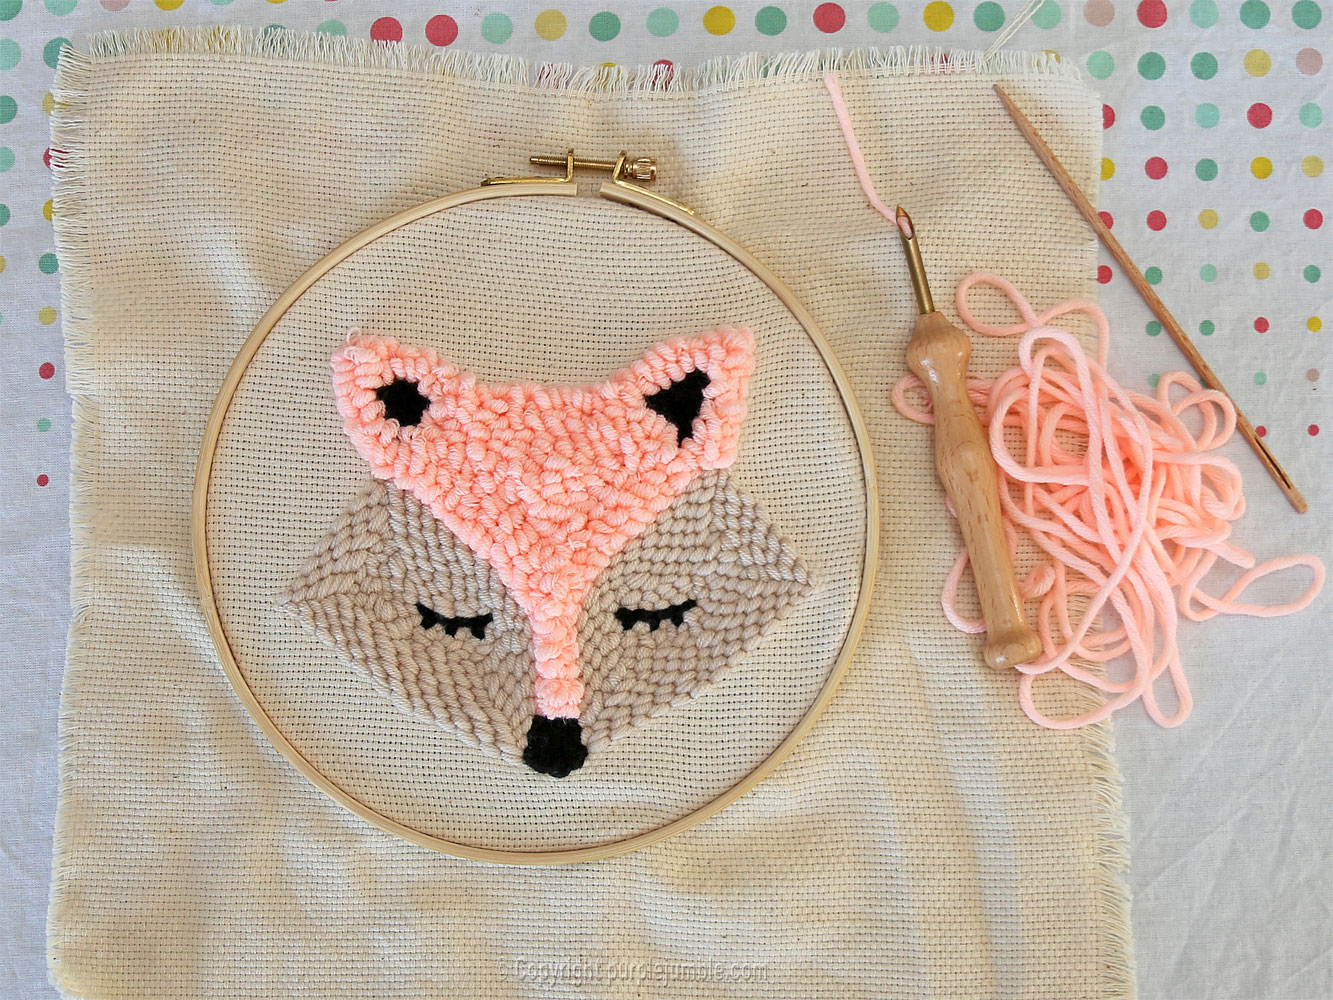 diy cadre-renard-punch needle graine créative broderie